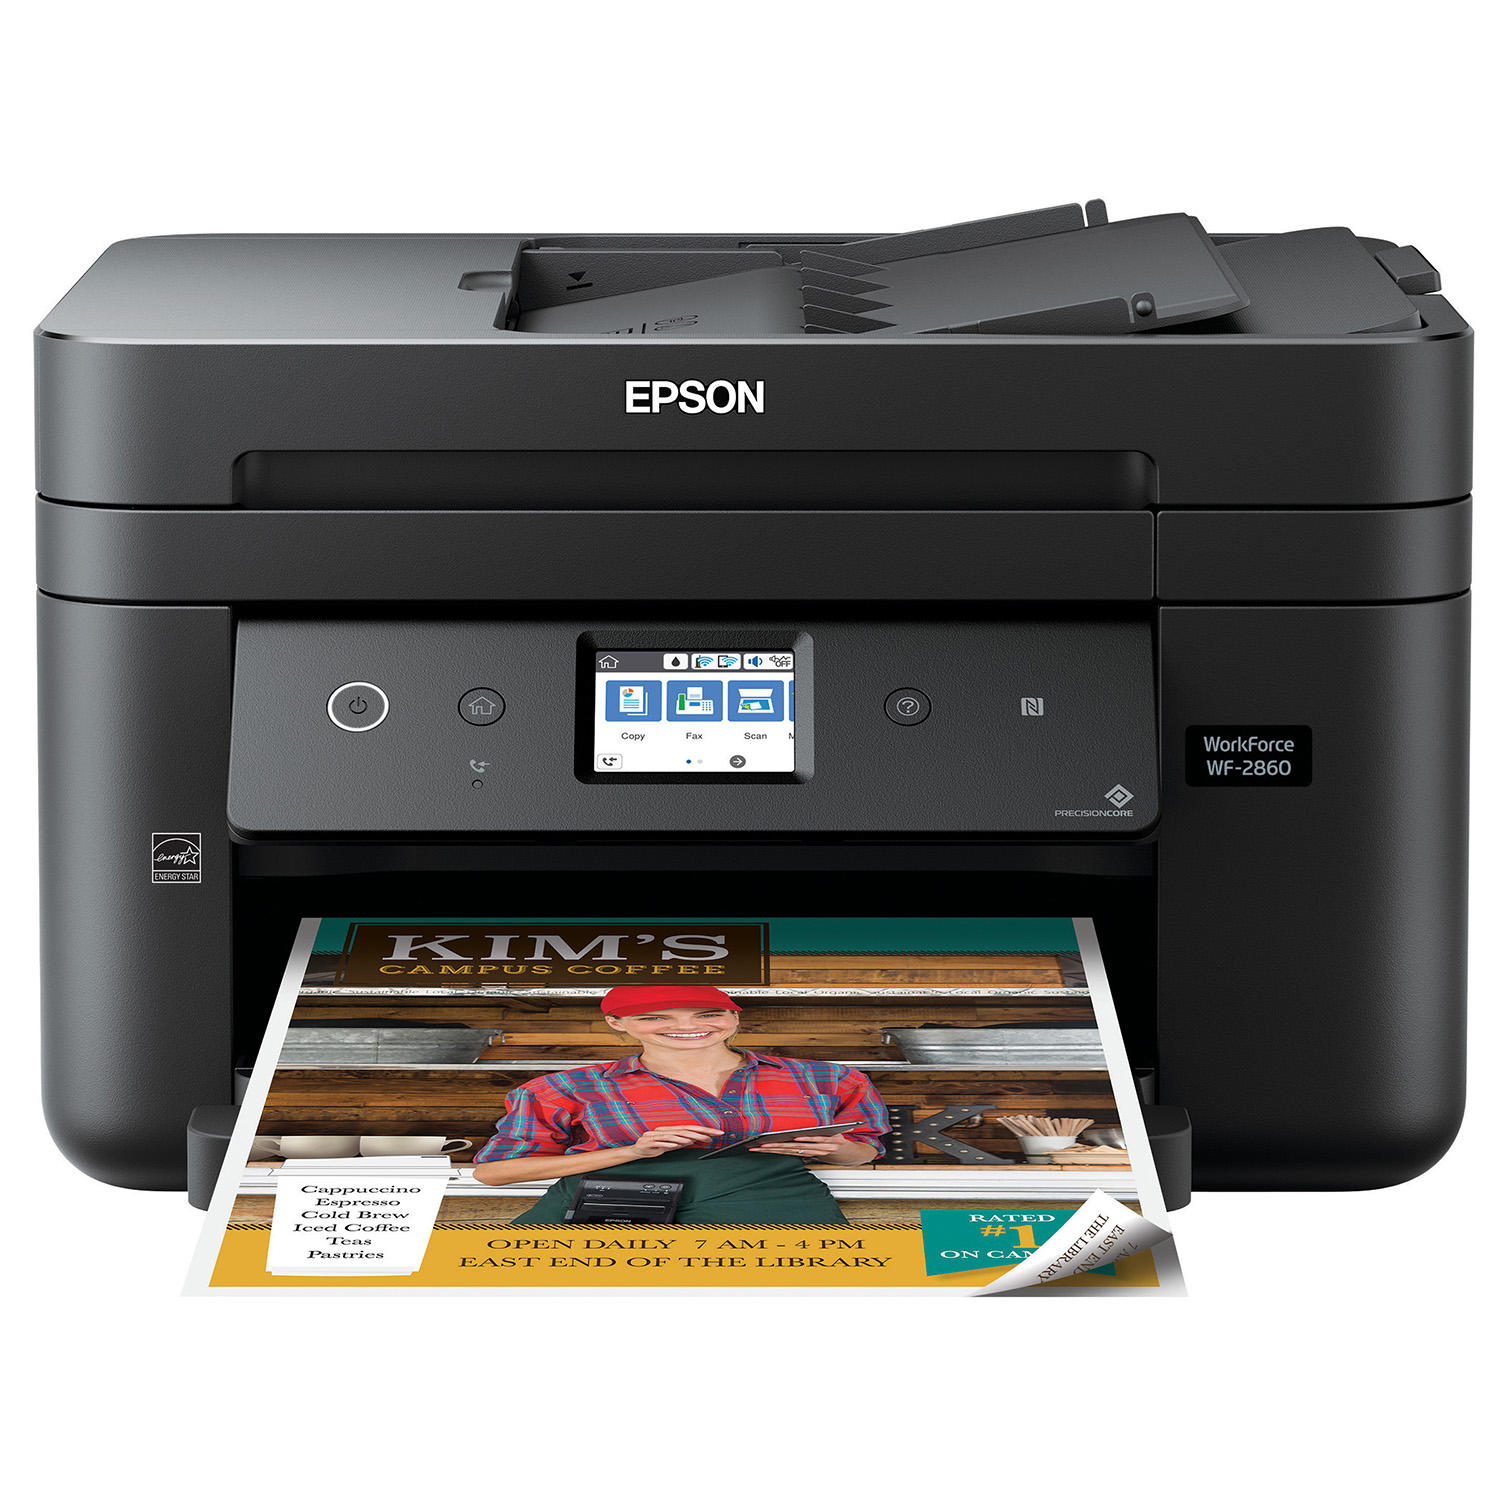 Epson WorkForce WF-2860 Special Edition All-in-One Printer